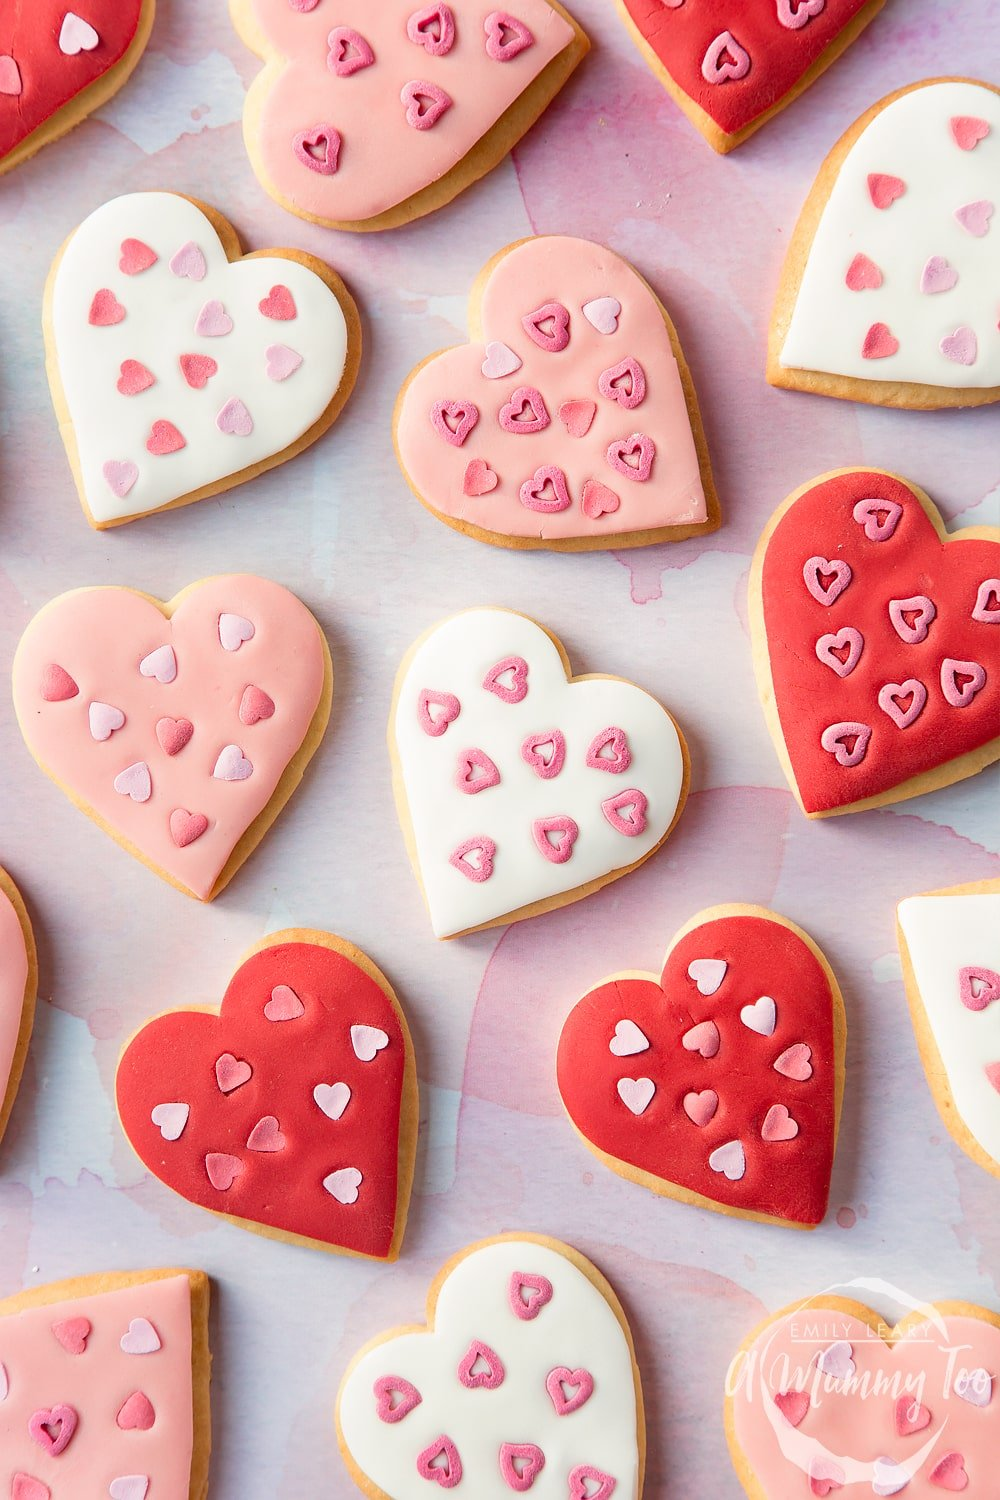 Overhead shot of heart shaped biscuits for Valentines day